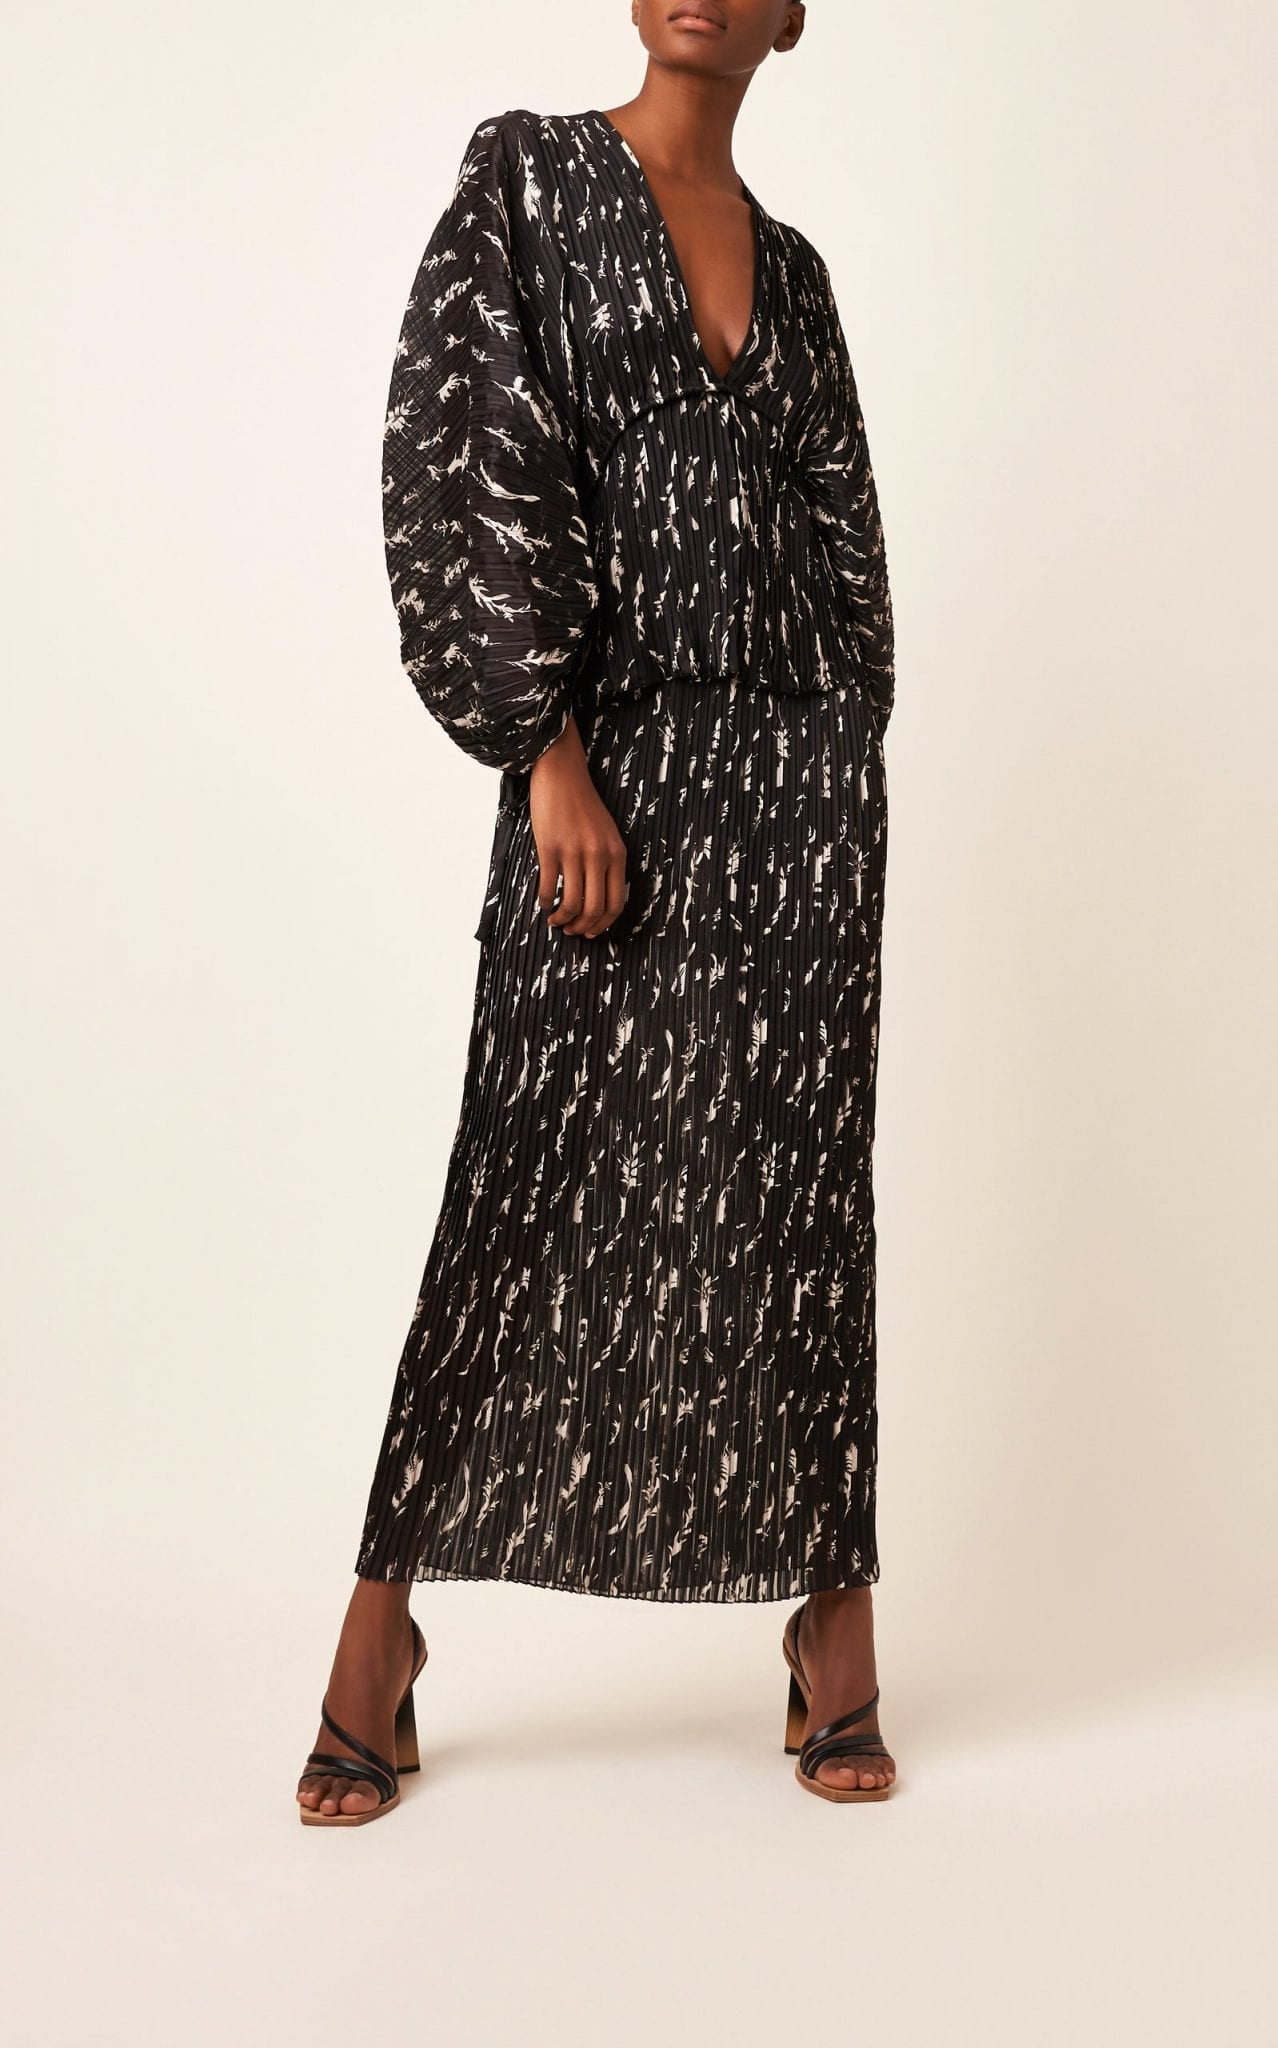 GIVENCHY Printed Plissé Maxi Dress